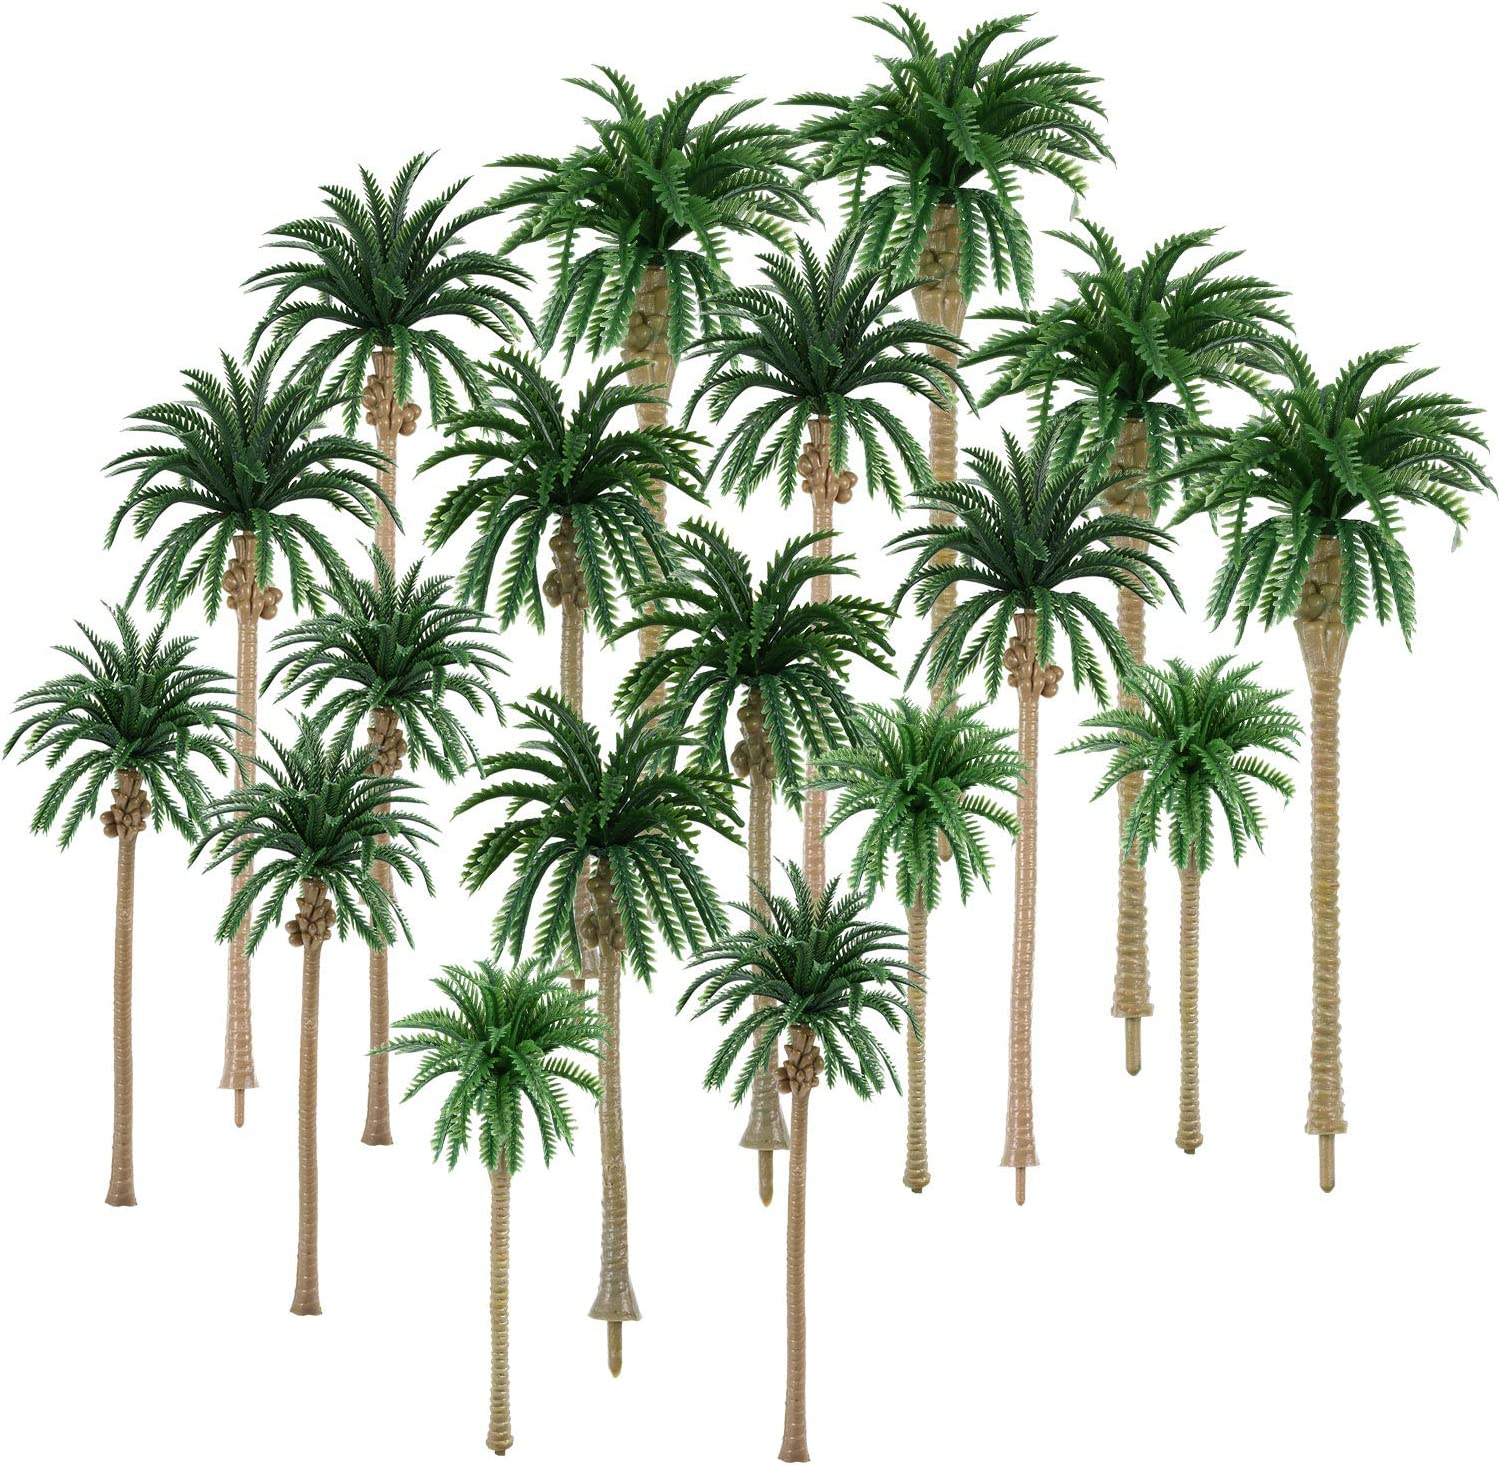 30 Pieces Model Coconut Palm Tree Scenery Model Tree Mixed Model Trees for Model Train Railway Architecture Diorama DIY Scenery Landscape (Style 1)